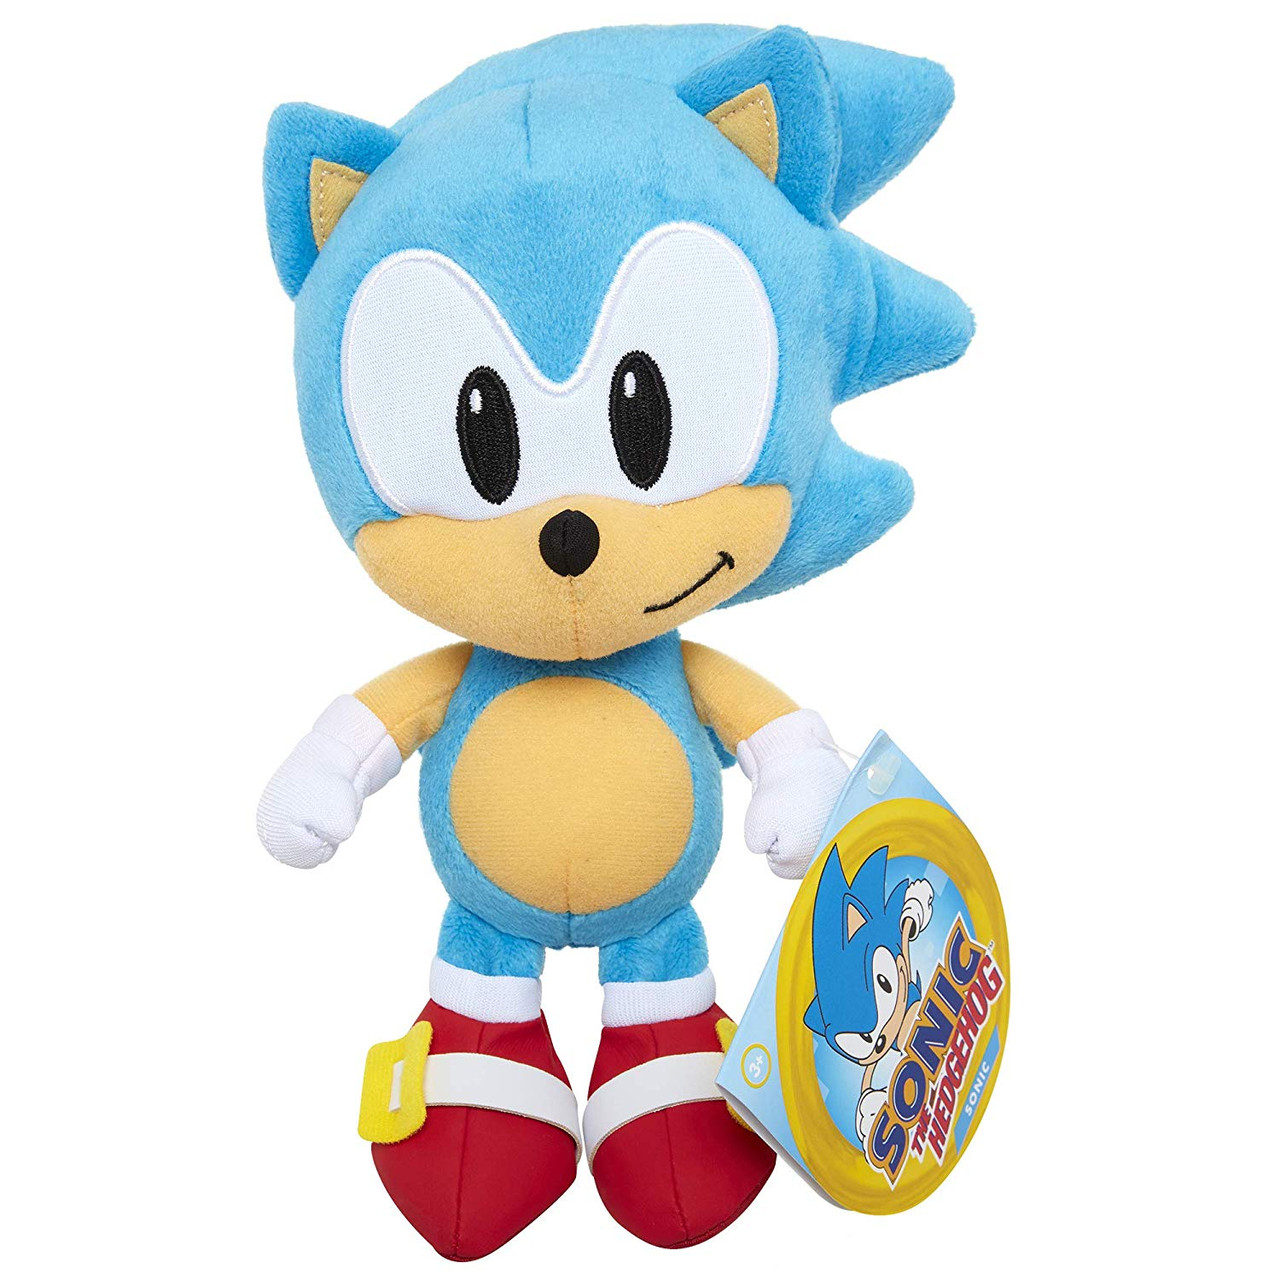 Plush Toy - Sonic the Hedgehog - Sonic - 7 Inch - Wave 1